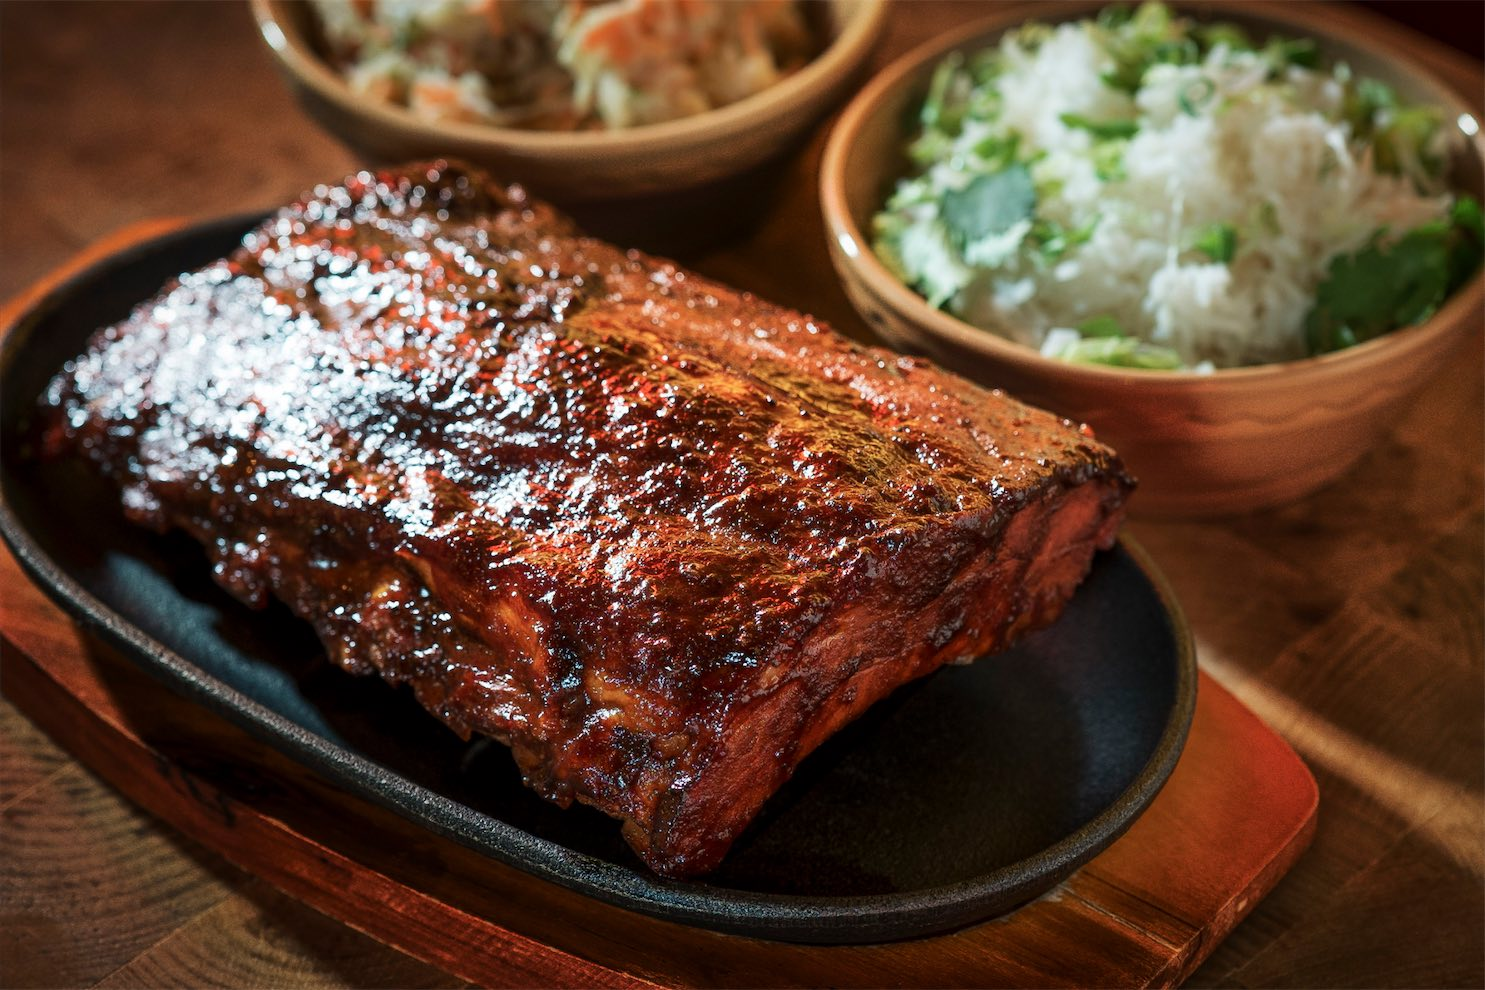 BBQ'd Swwt and Sour pork ribs at the Fat Pig by Tom Aikens